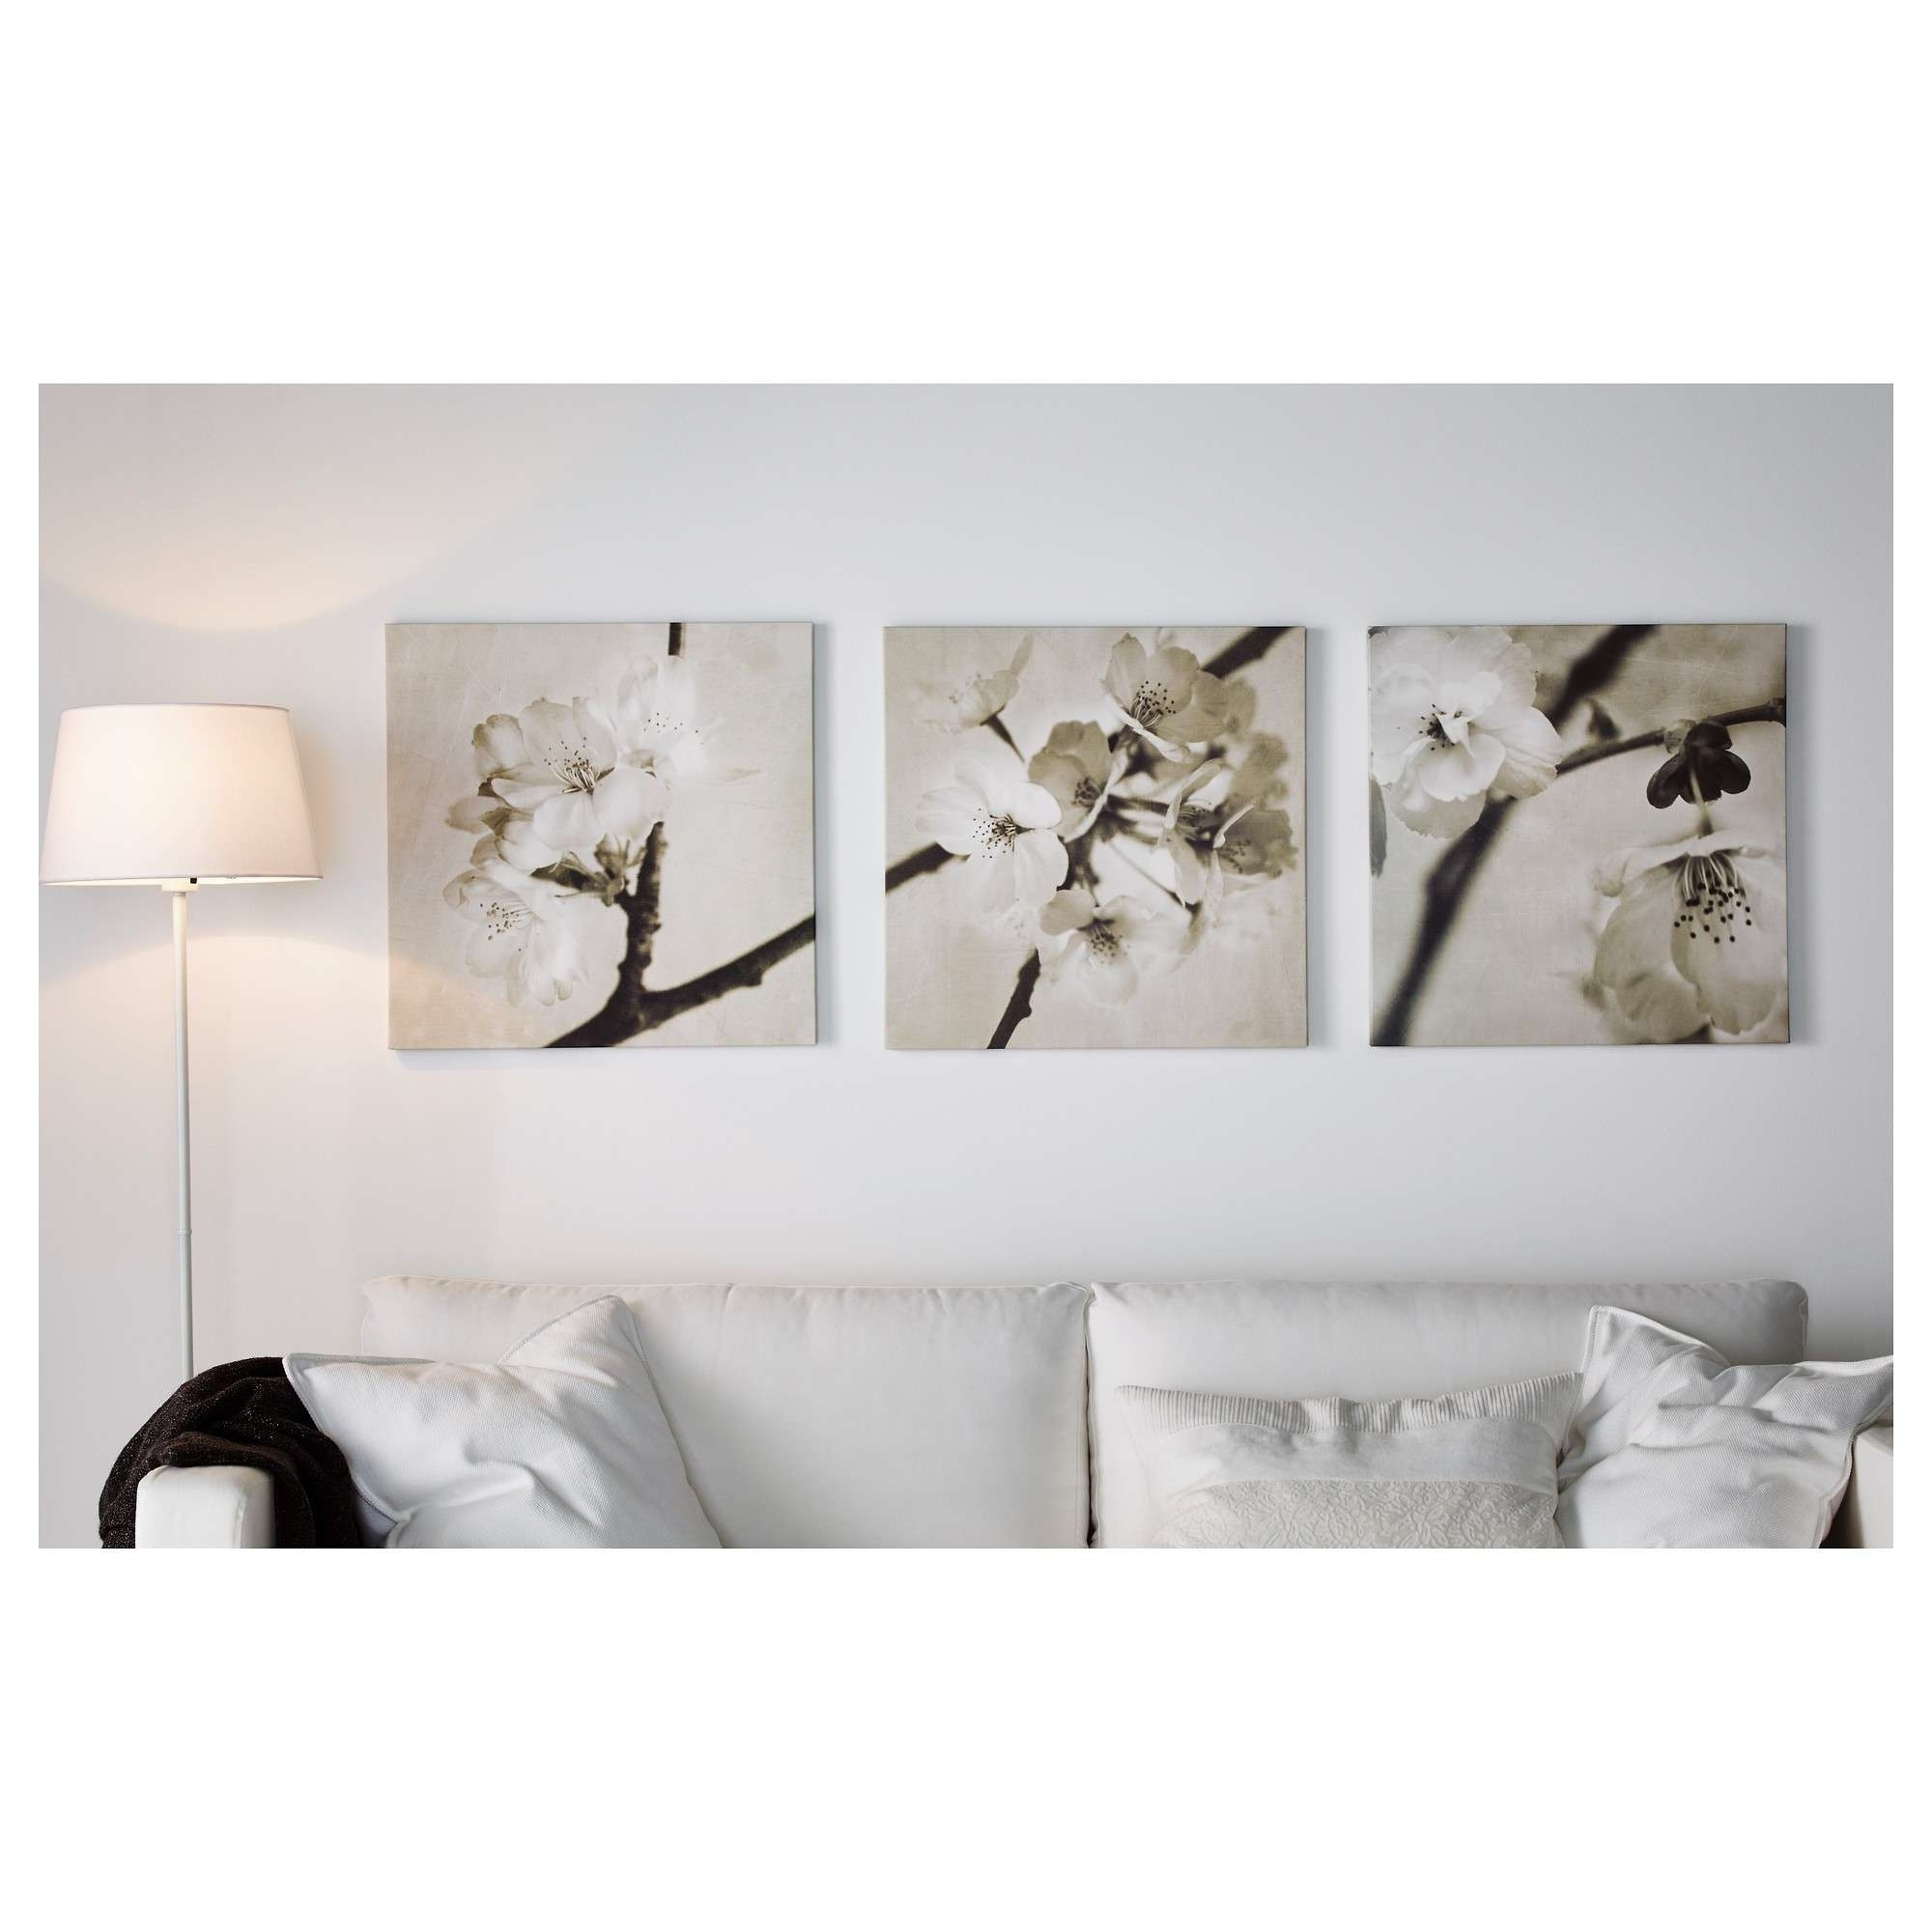 Best Of Wall Canvas Art Ikea | Wall Decorations Within Latest Ikea Wall Art (View 6 of 15)